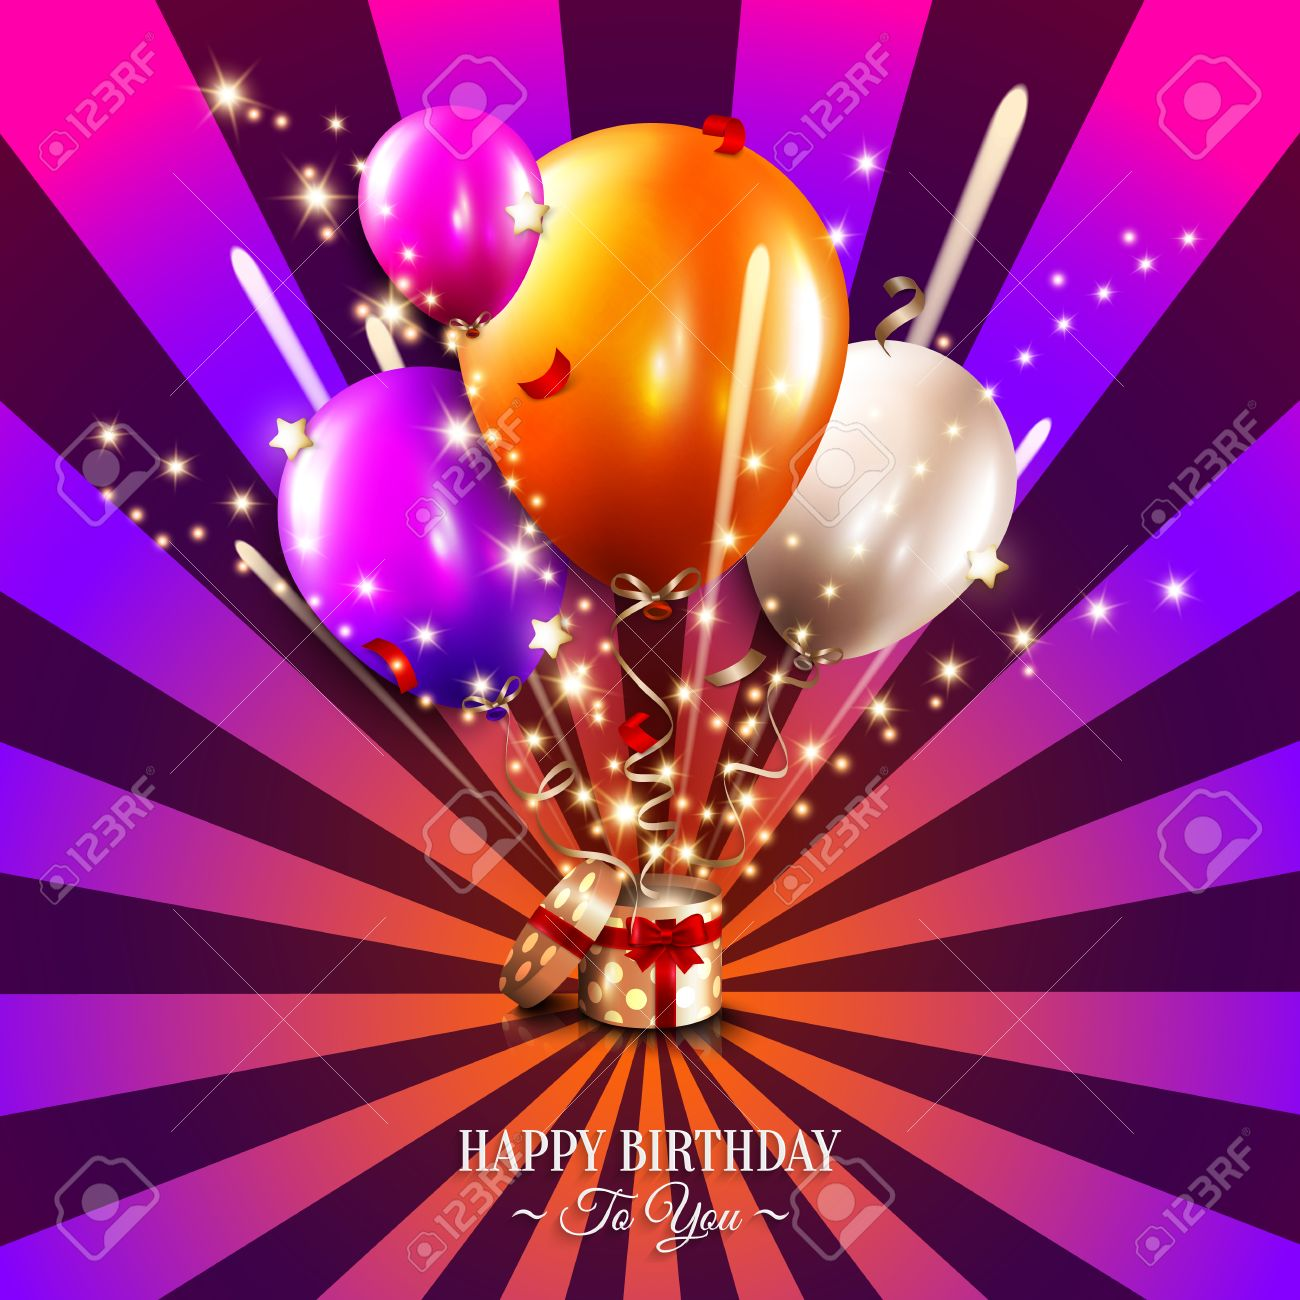 Birthday card with open gift box, balloons and magic light fireworks on the sun rays background. - 39374305